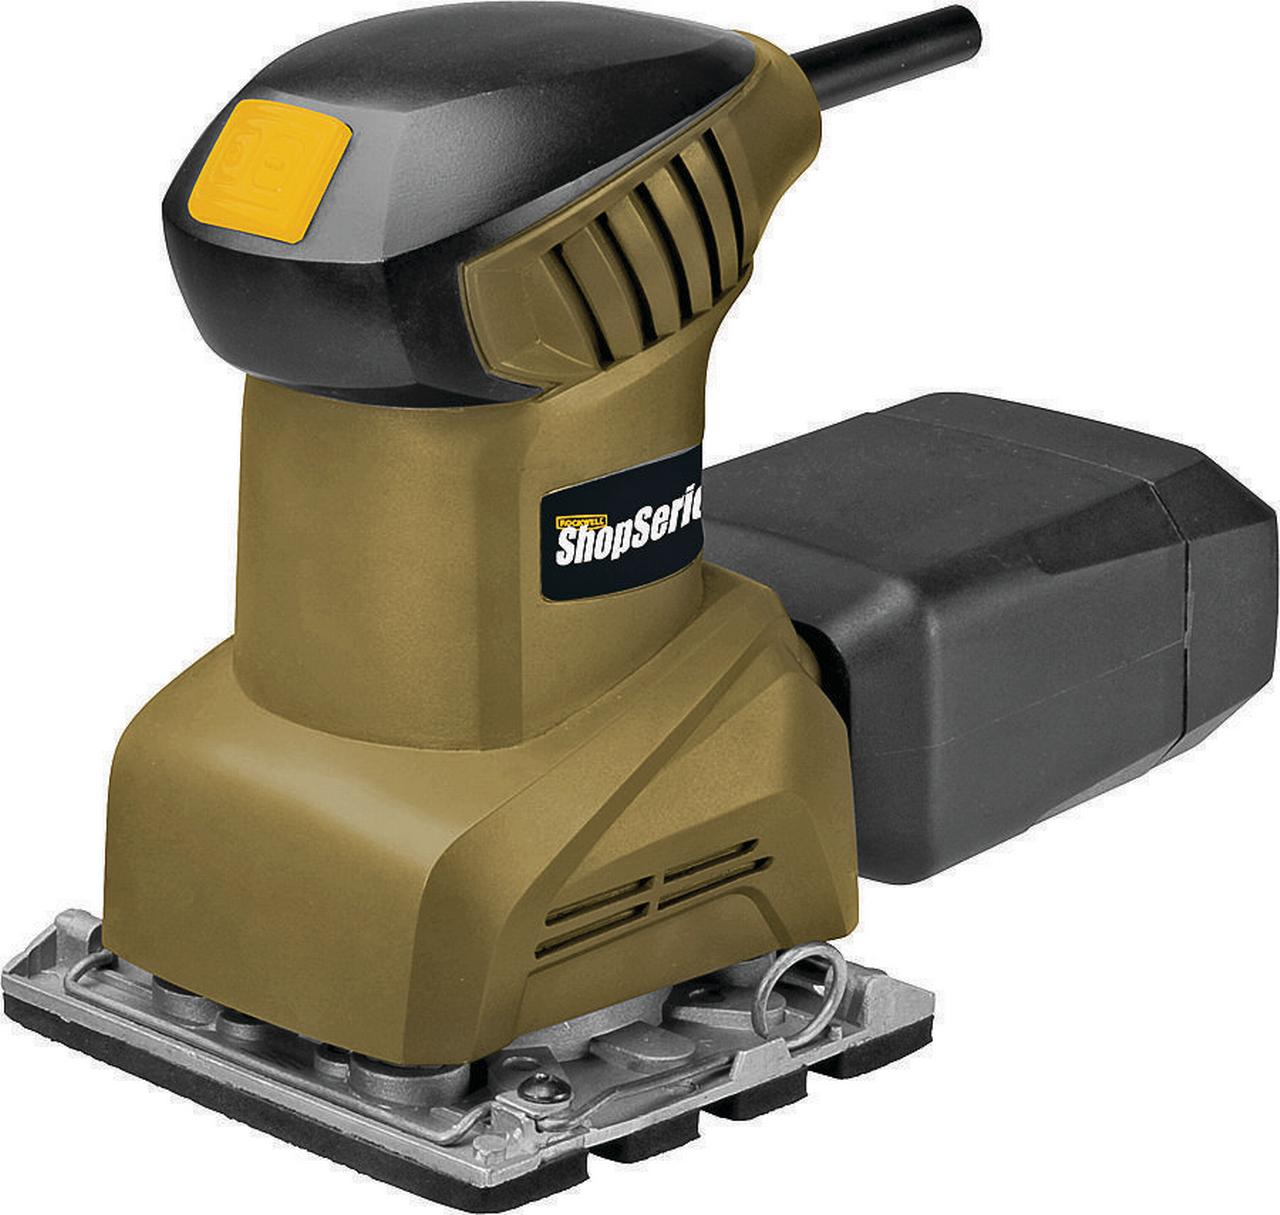 "Rockwell ShopSeries 2 Amp 1 4"" SHeet Palm Sander by Positec Technology"